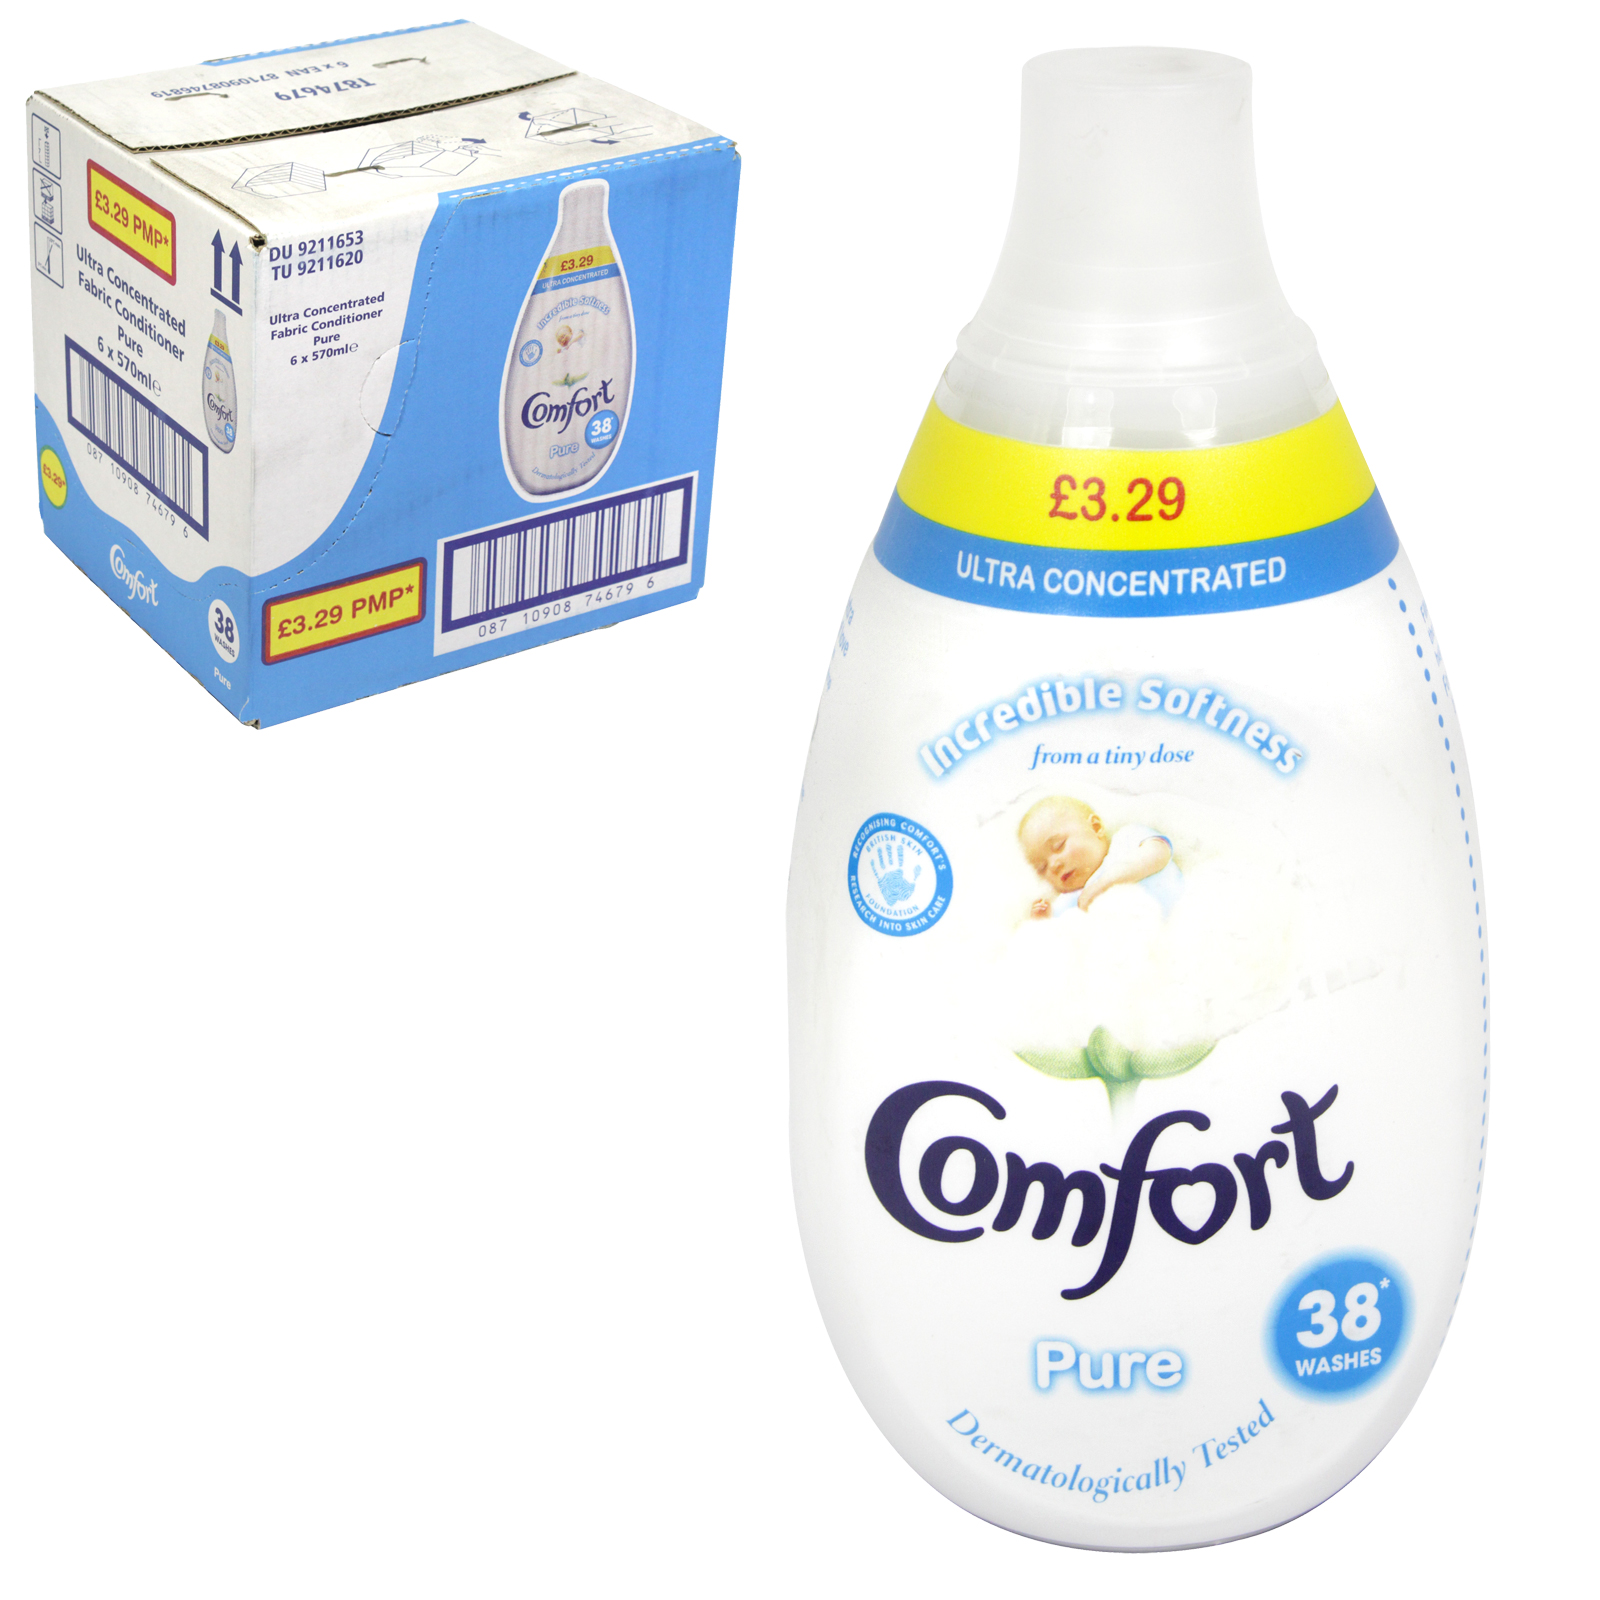 COMFORT INTENSE ULTRA CONCENTRATE 38 WASH PURE PM £3.29 X6